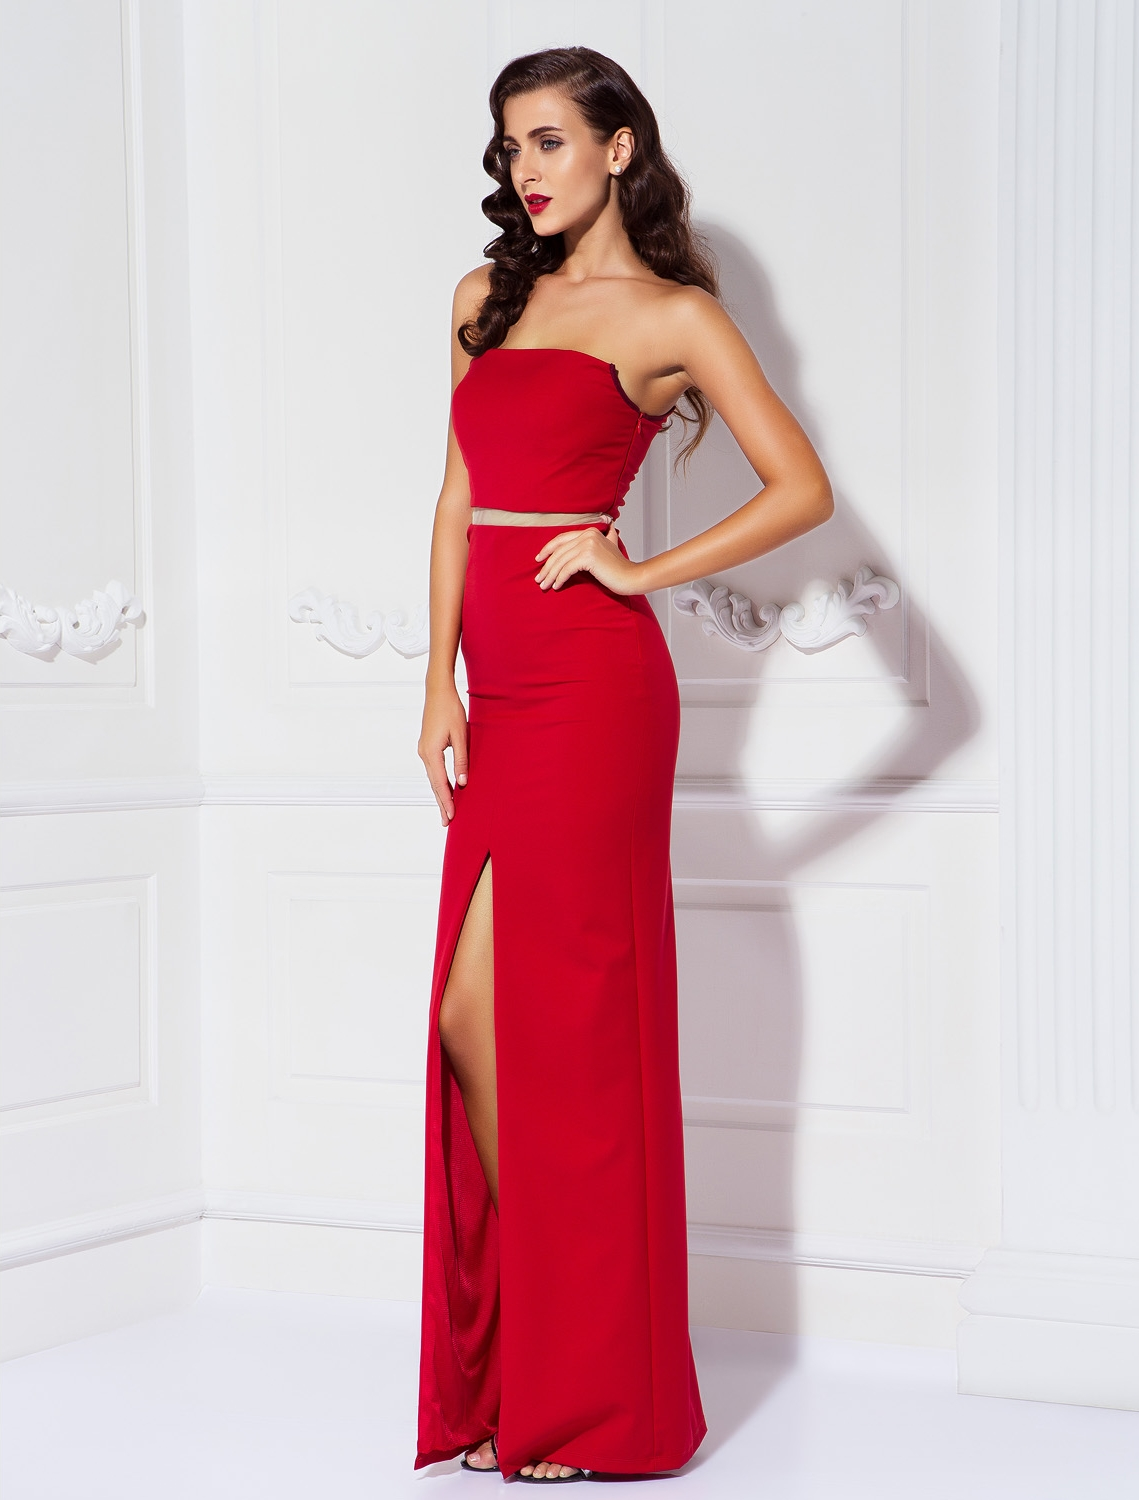 TS Couture Sheath   Column One Shoulder Floor Length Satin Chiffon party  Prom Dress with Draping High Quality Vestido de festaUSD 109.99-129.99 piece 5f3d7bfa6cd5